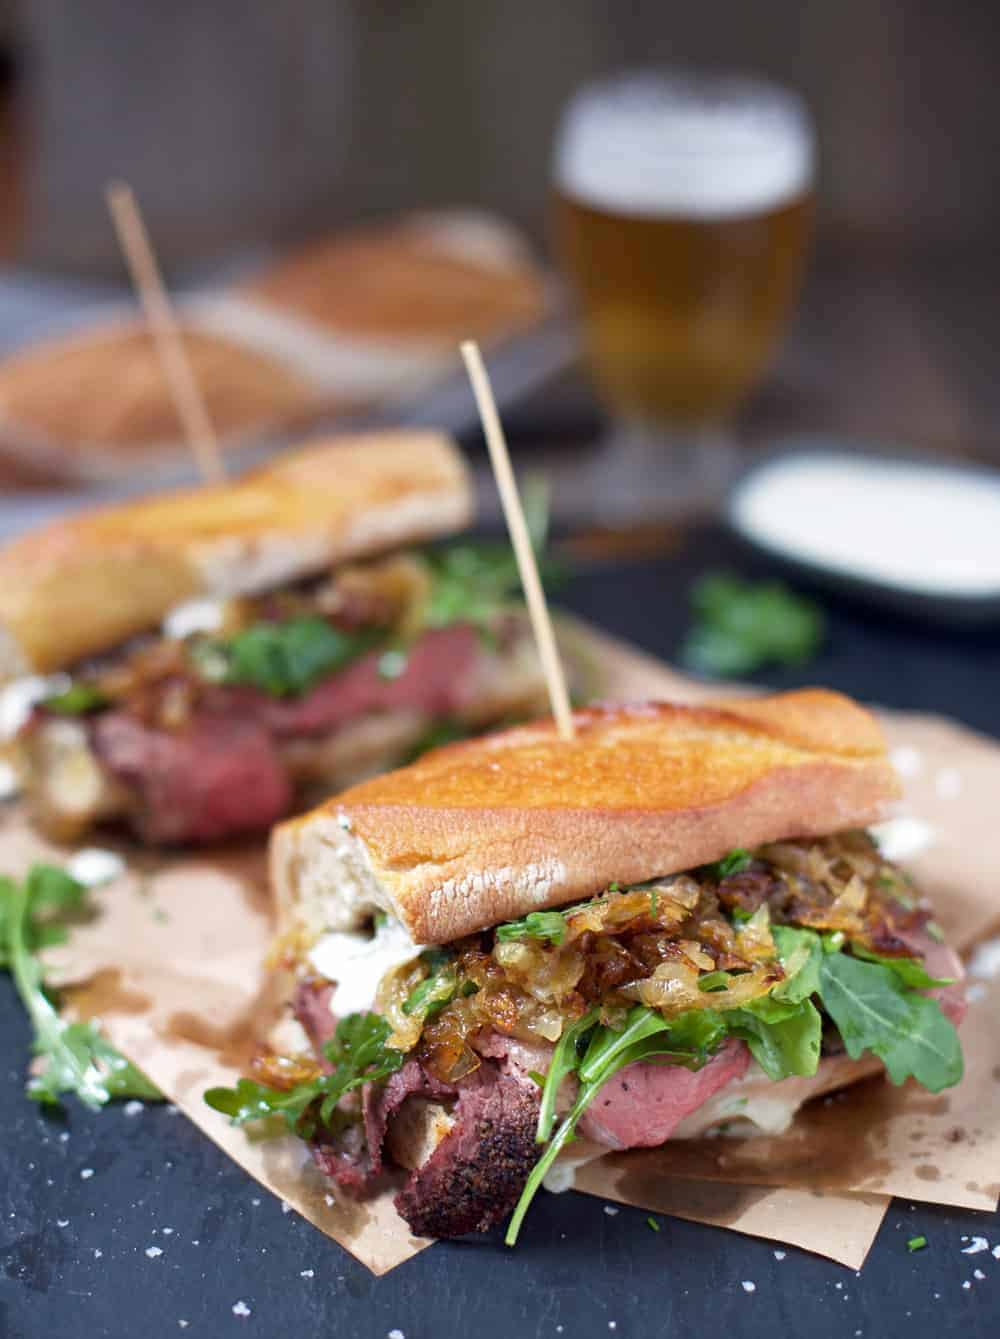 Madison Square Garden's Best Food For Rangers Fans: The Prime Rib Sandwich